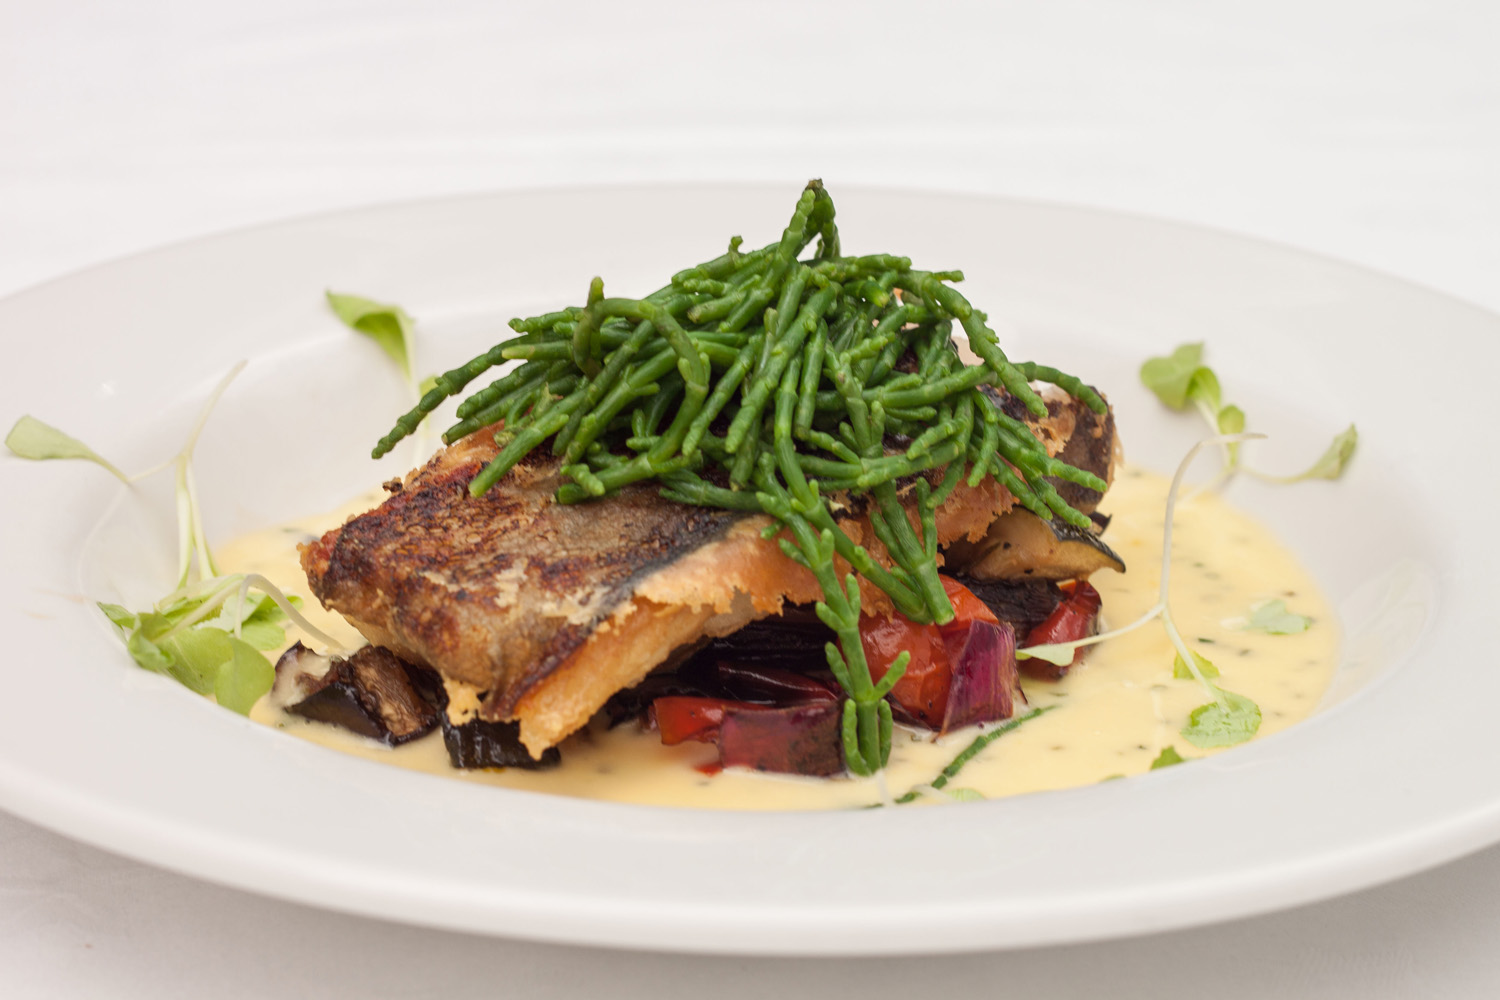 Pan-fried salmon with samphire